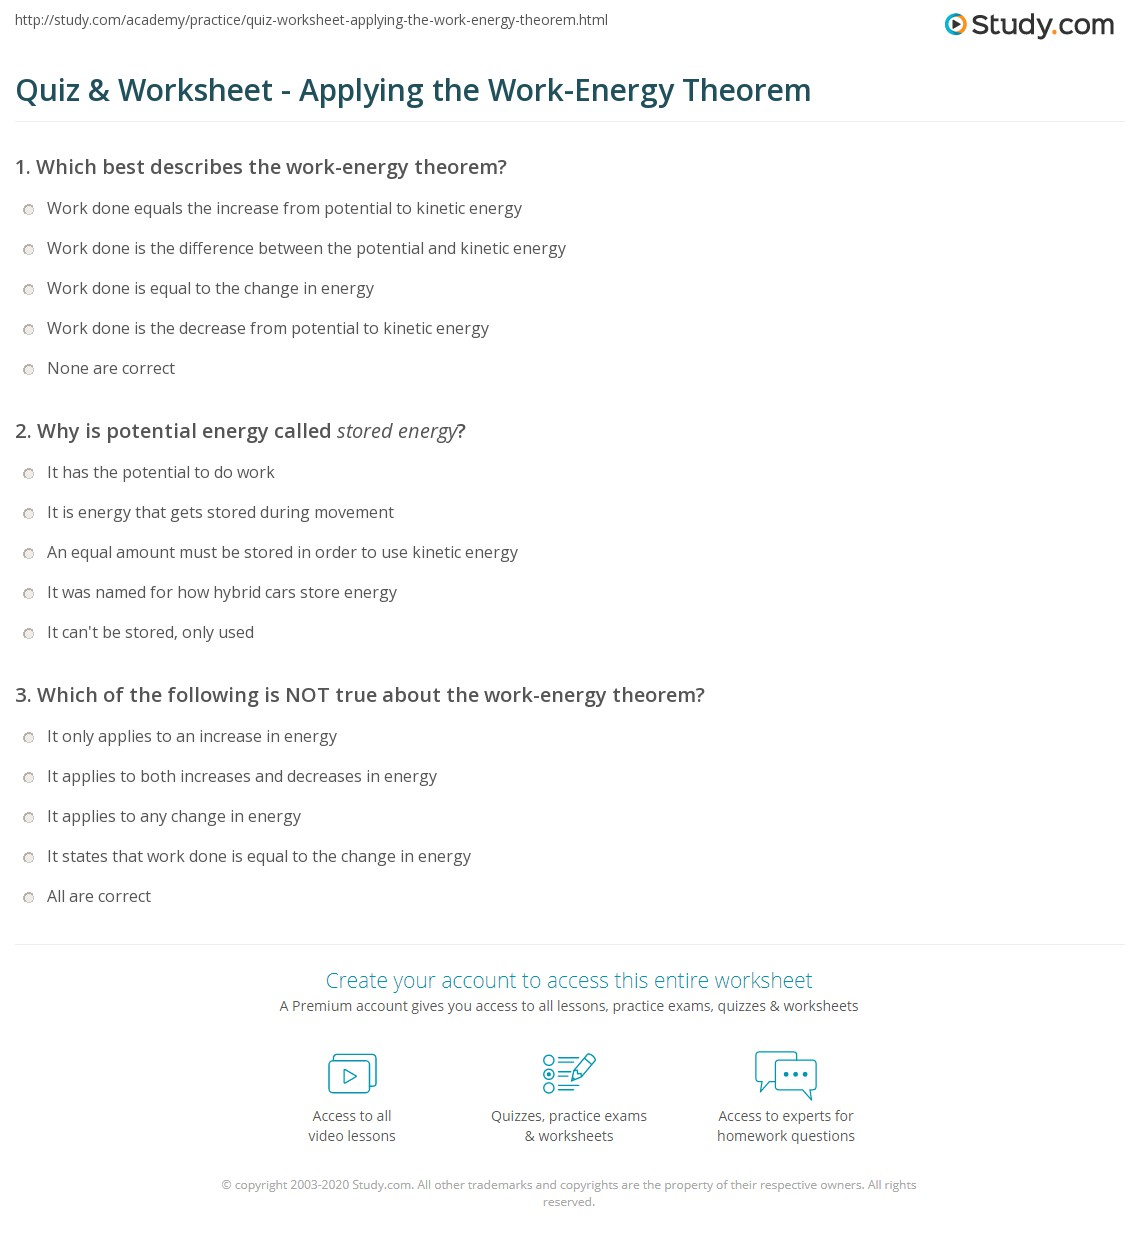 Work Kinetic Energy Theorem Worksheet Answers | Printable ...